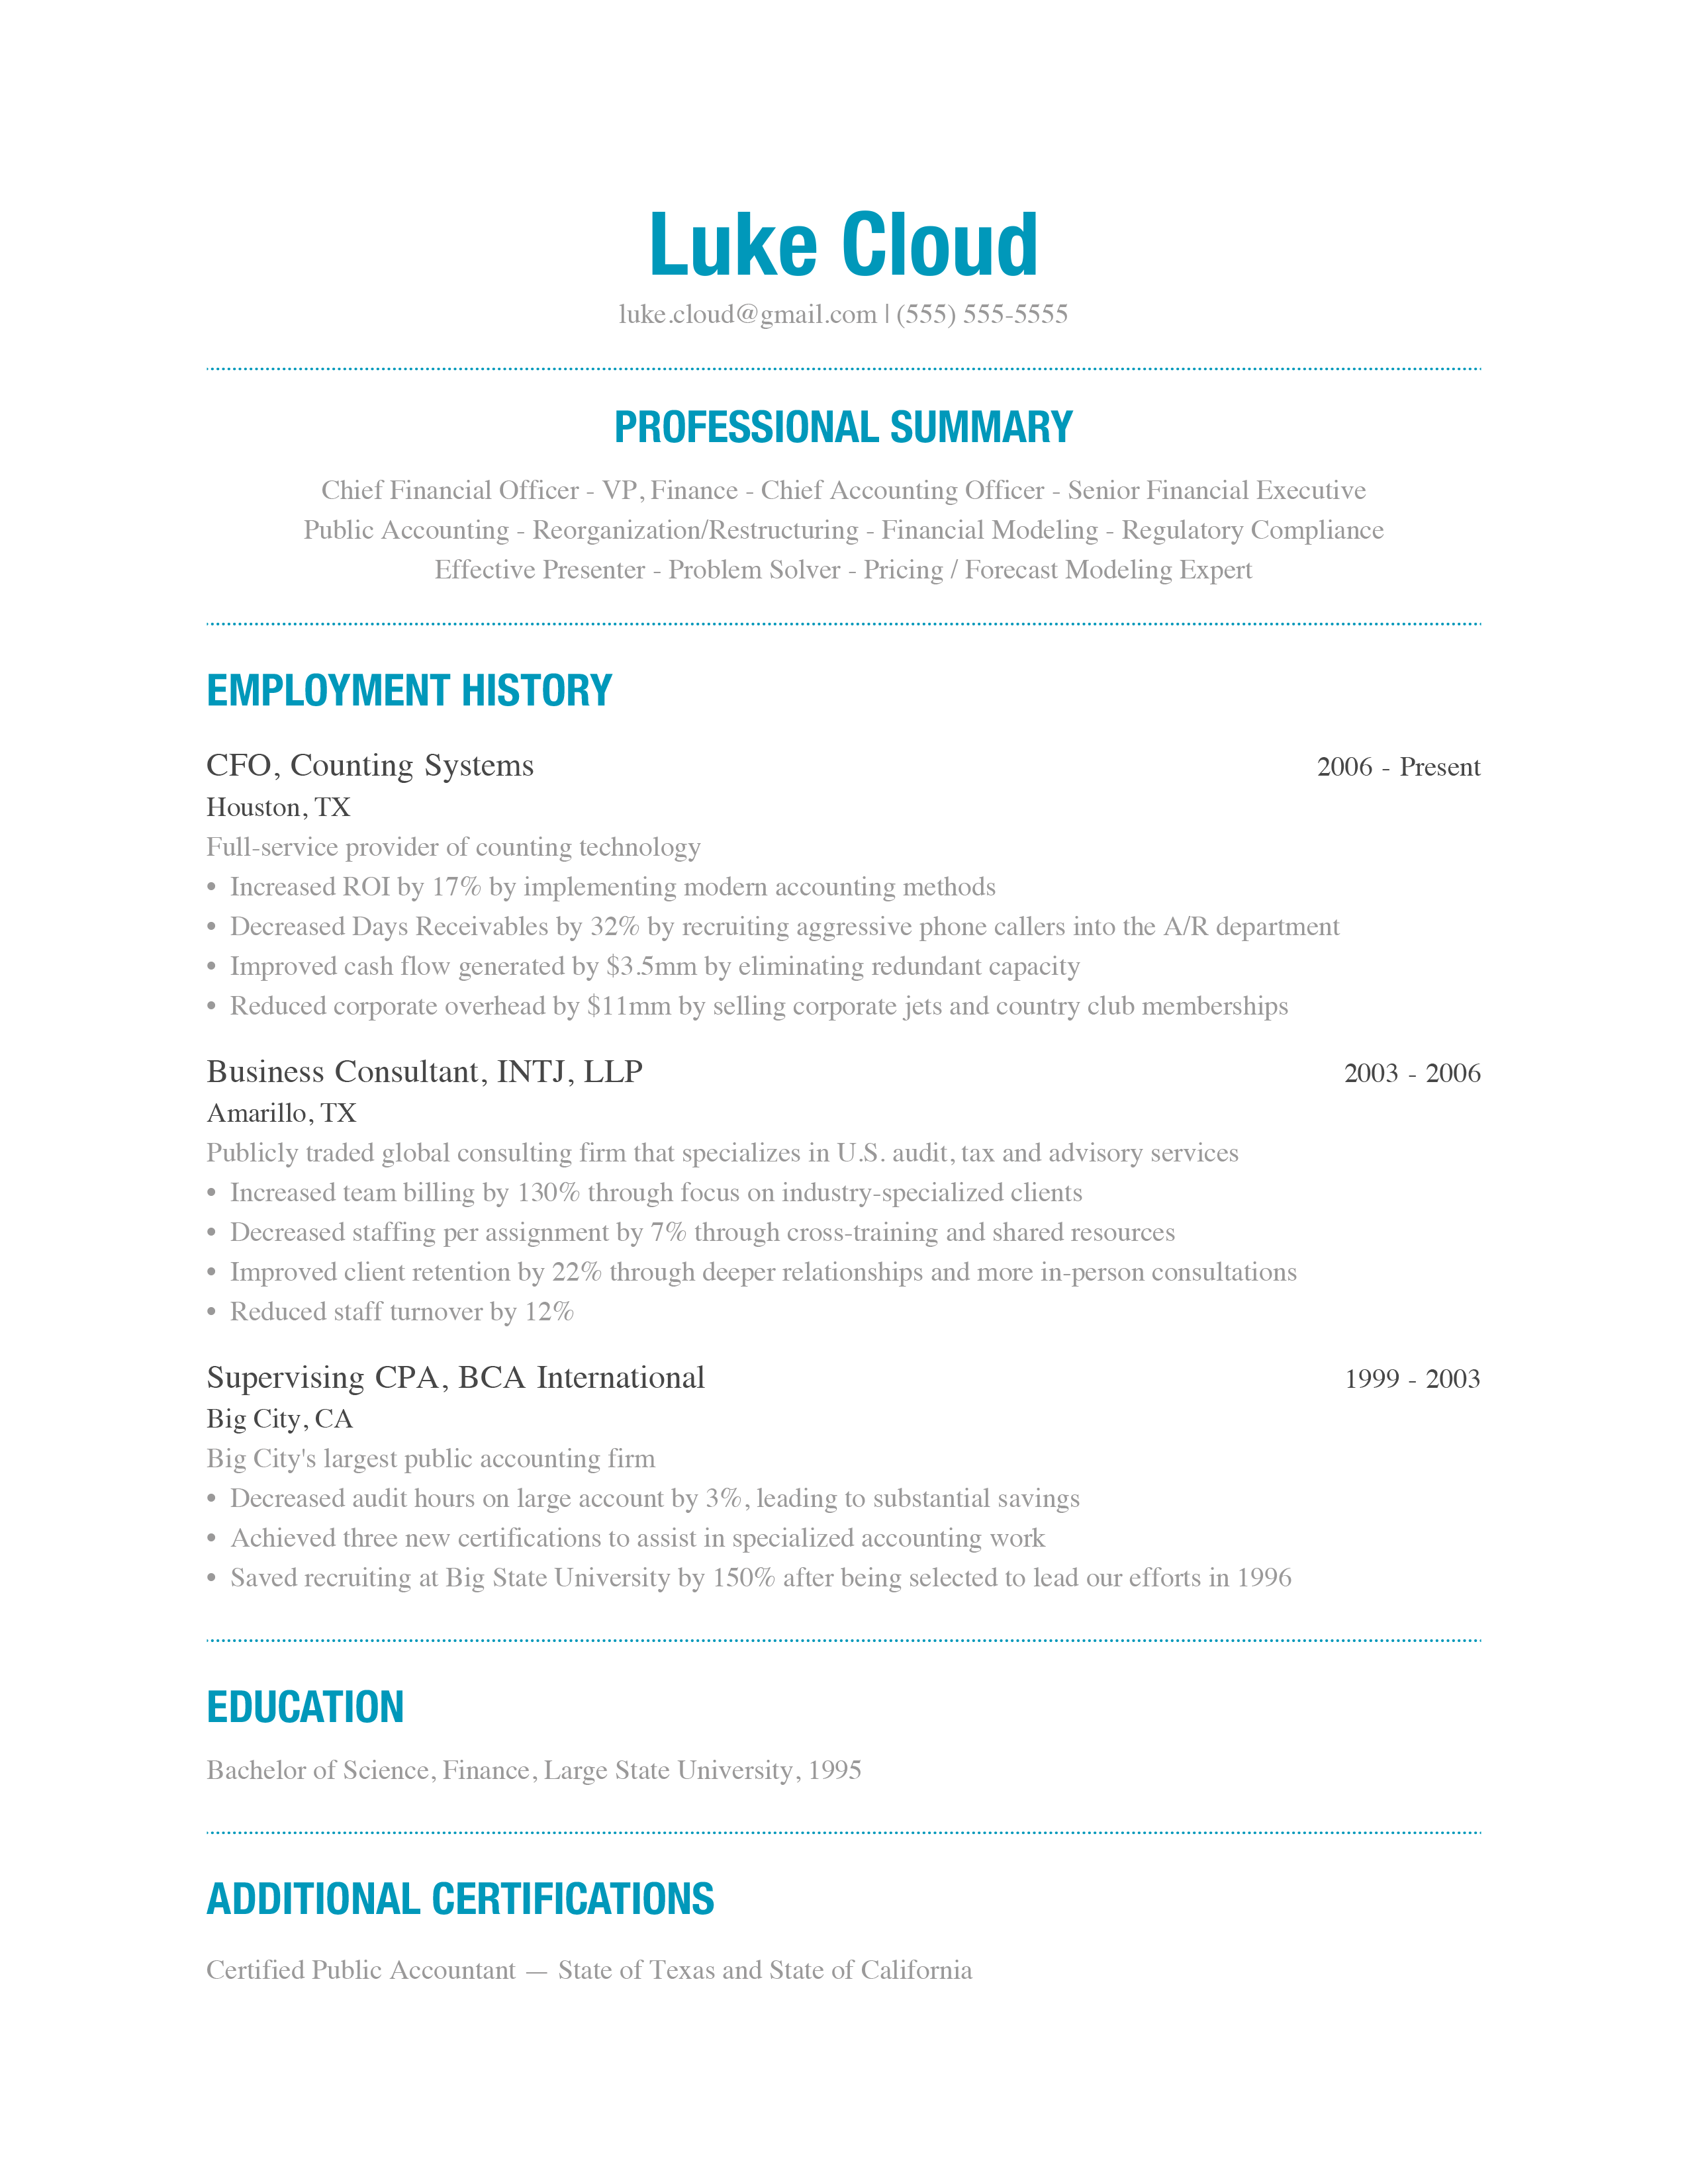 How To Write A Resume Free A Free Modern Beautiful Way To Write Your Resume Well  Ladders .